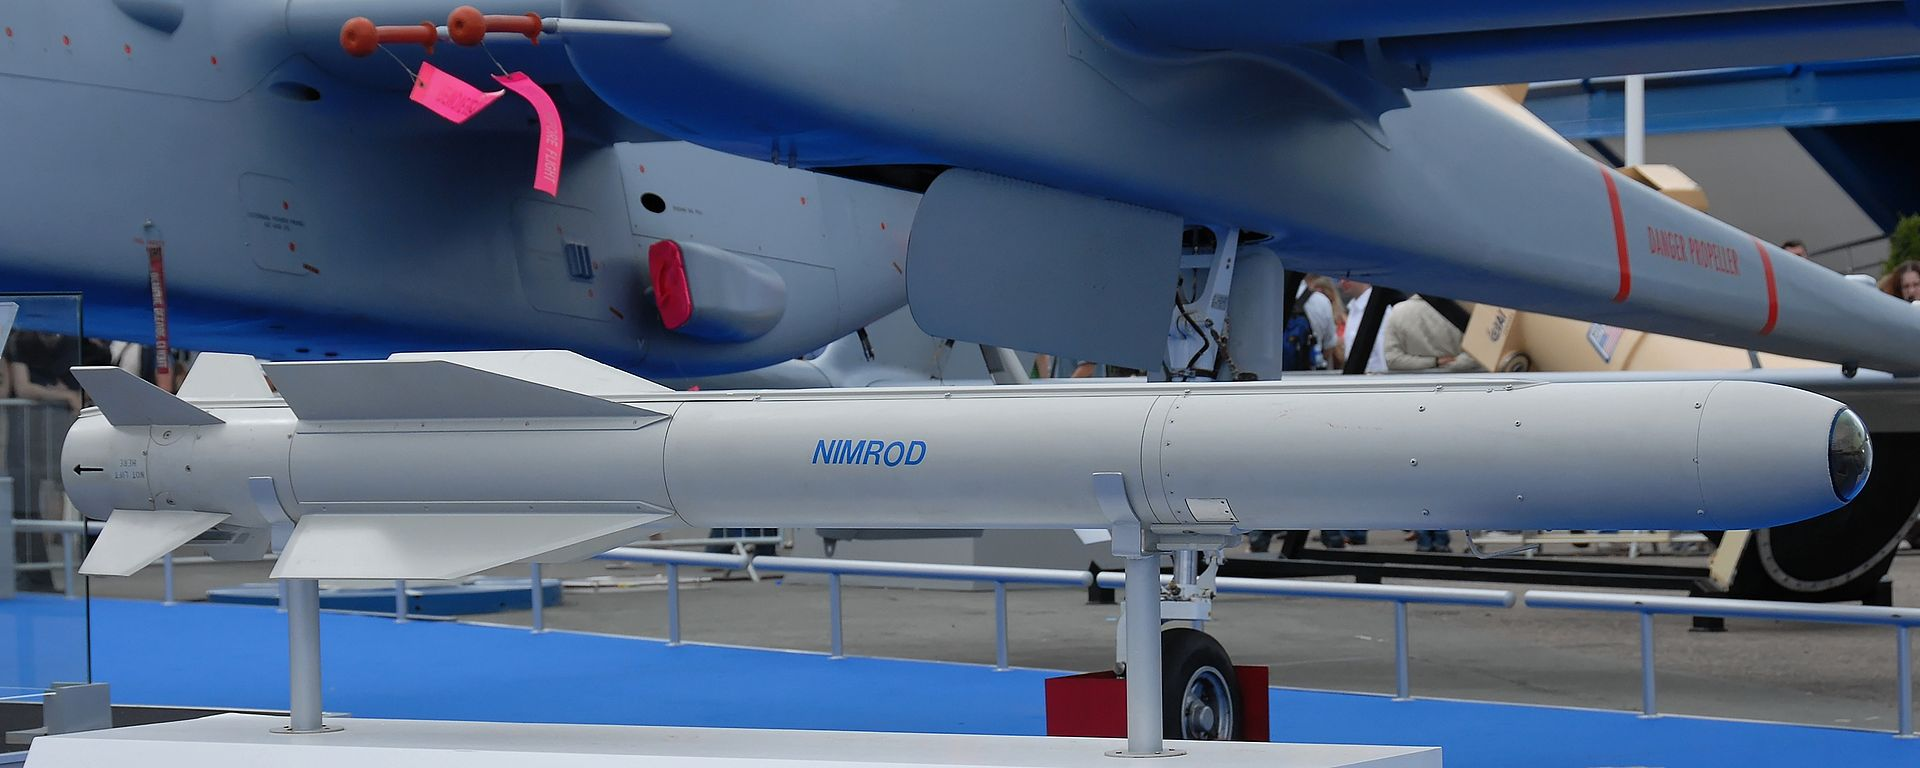 An IAI Nimrod anti-tank laser homing missile at the 2007 International Paris Air Show at the Le Bourget airport